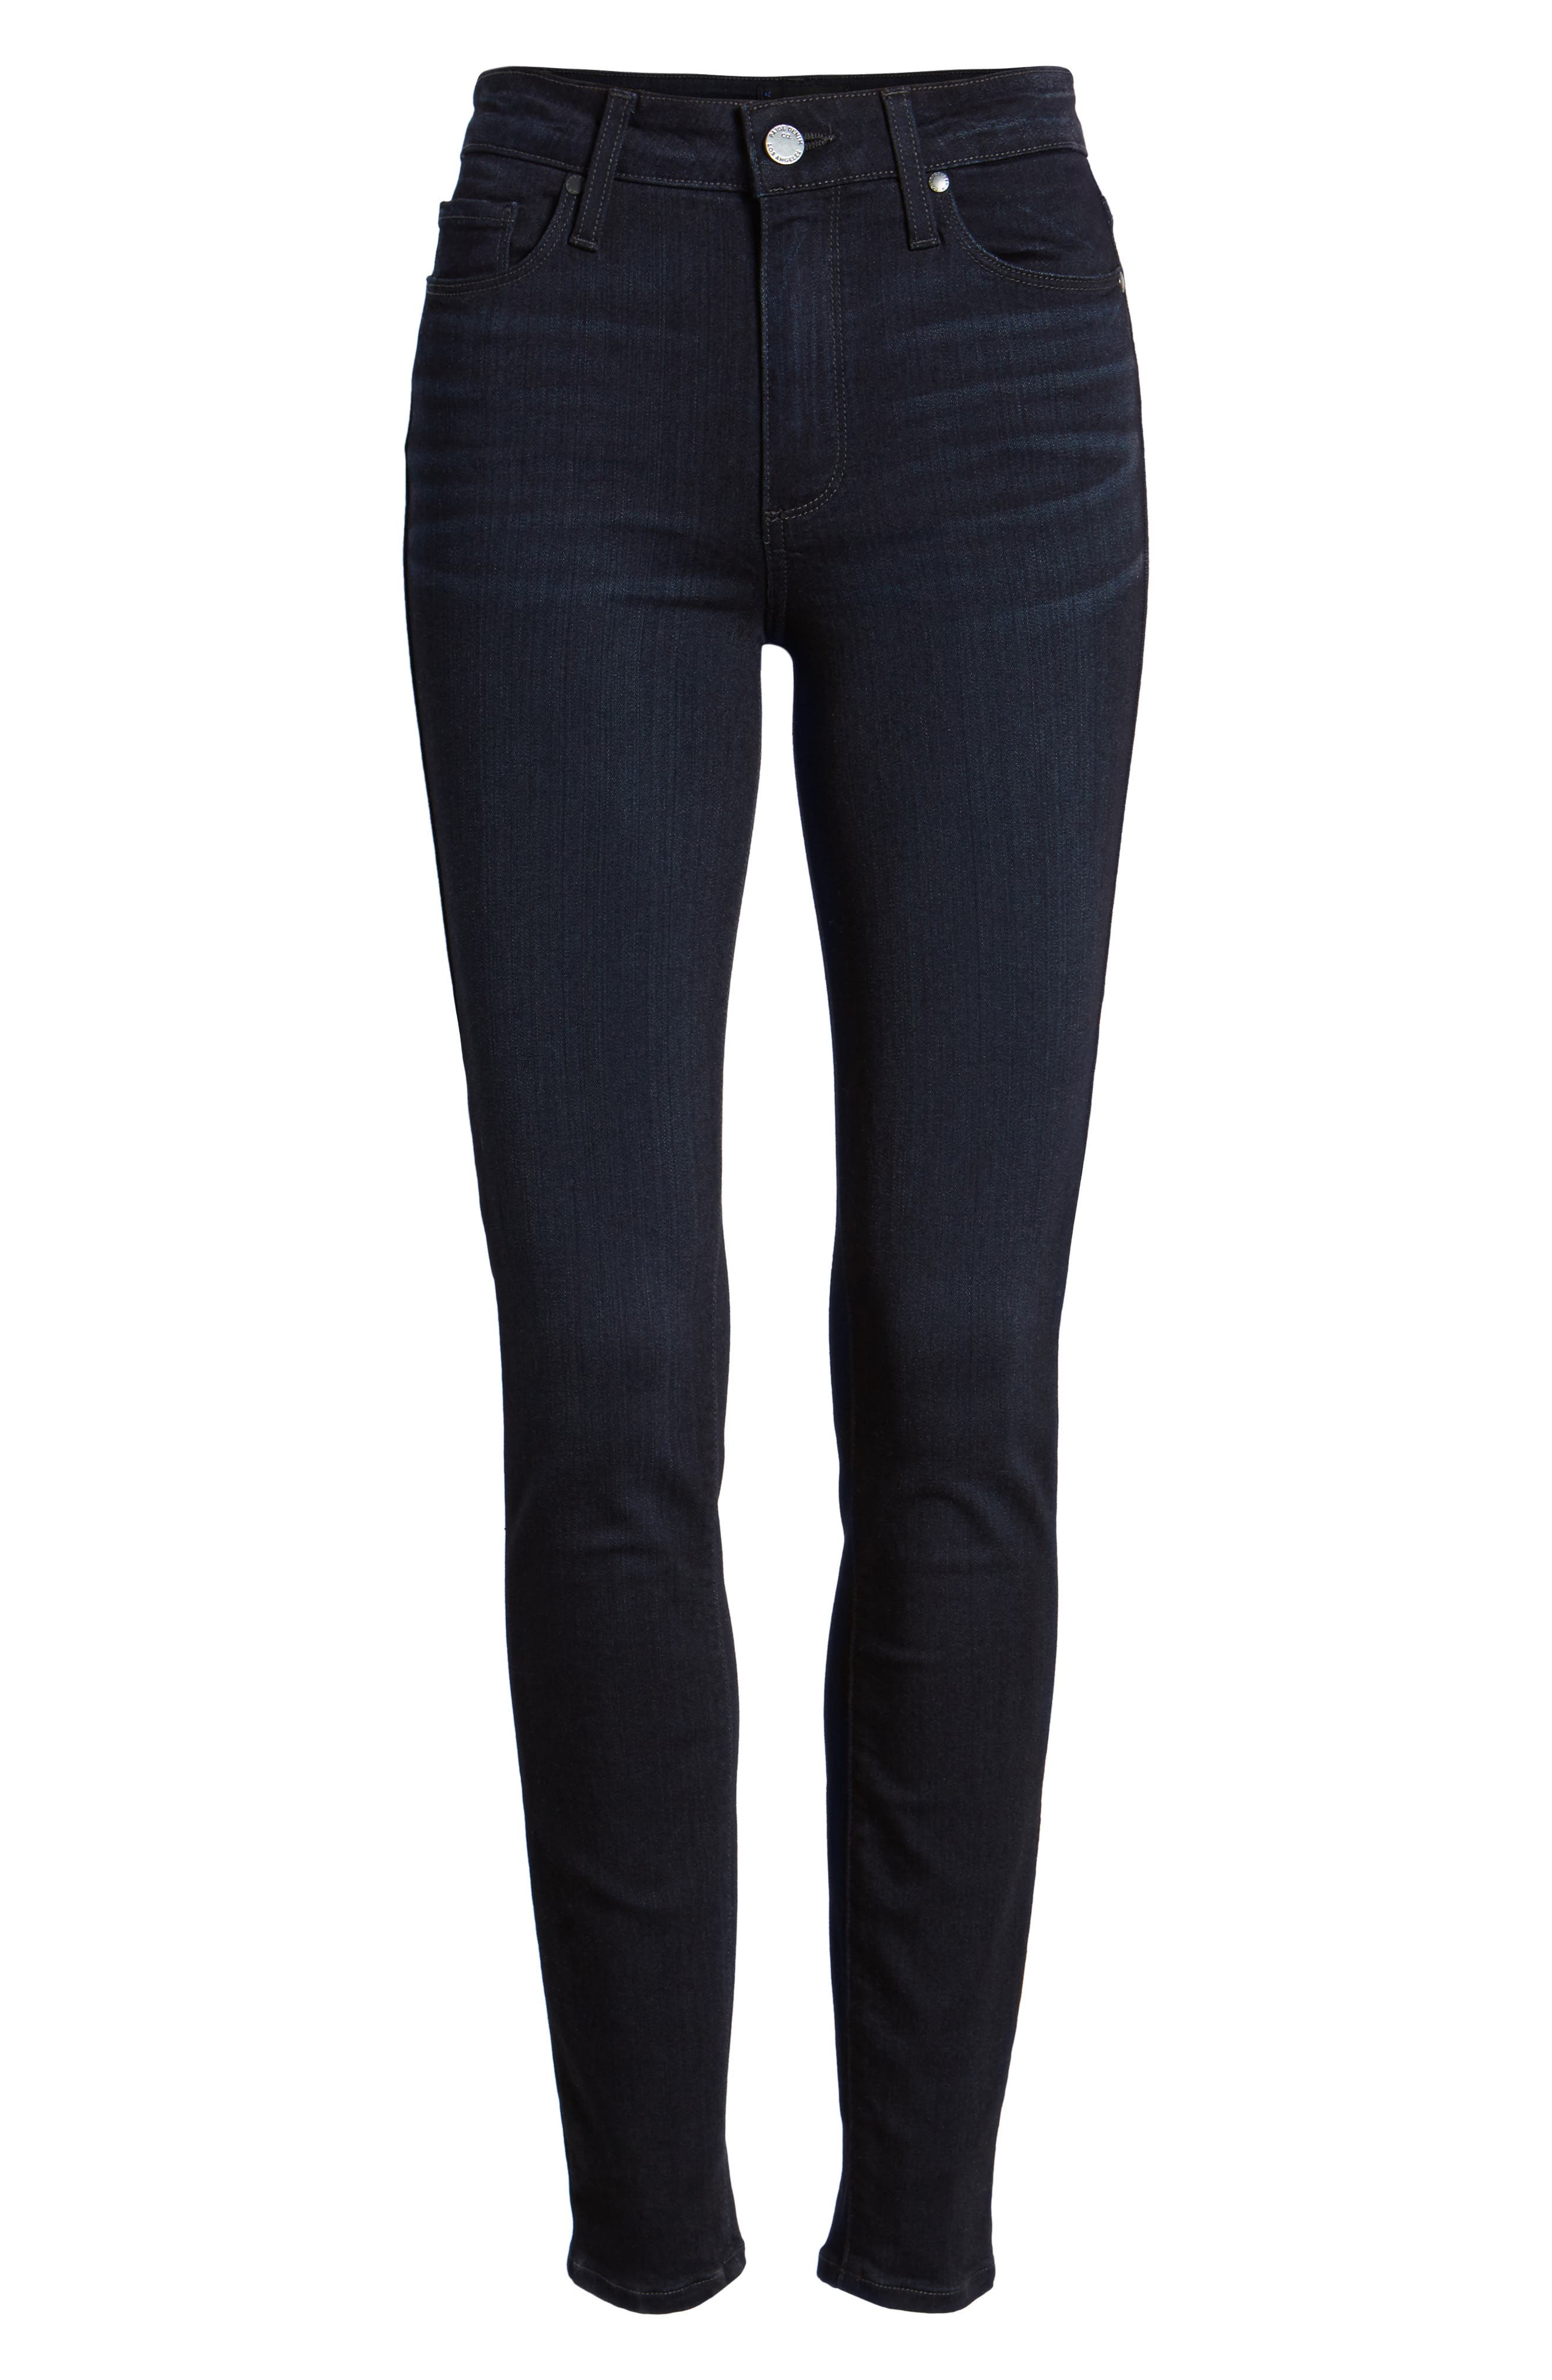 Transcend - Hoxton High Waist Ultra Skinny Jeans,                             Alternate thumbnail 7, color,                             Emryn